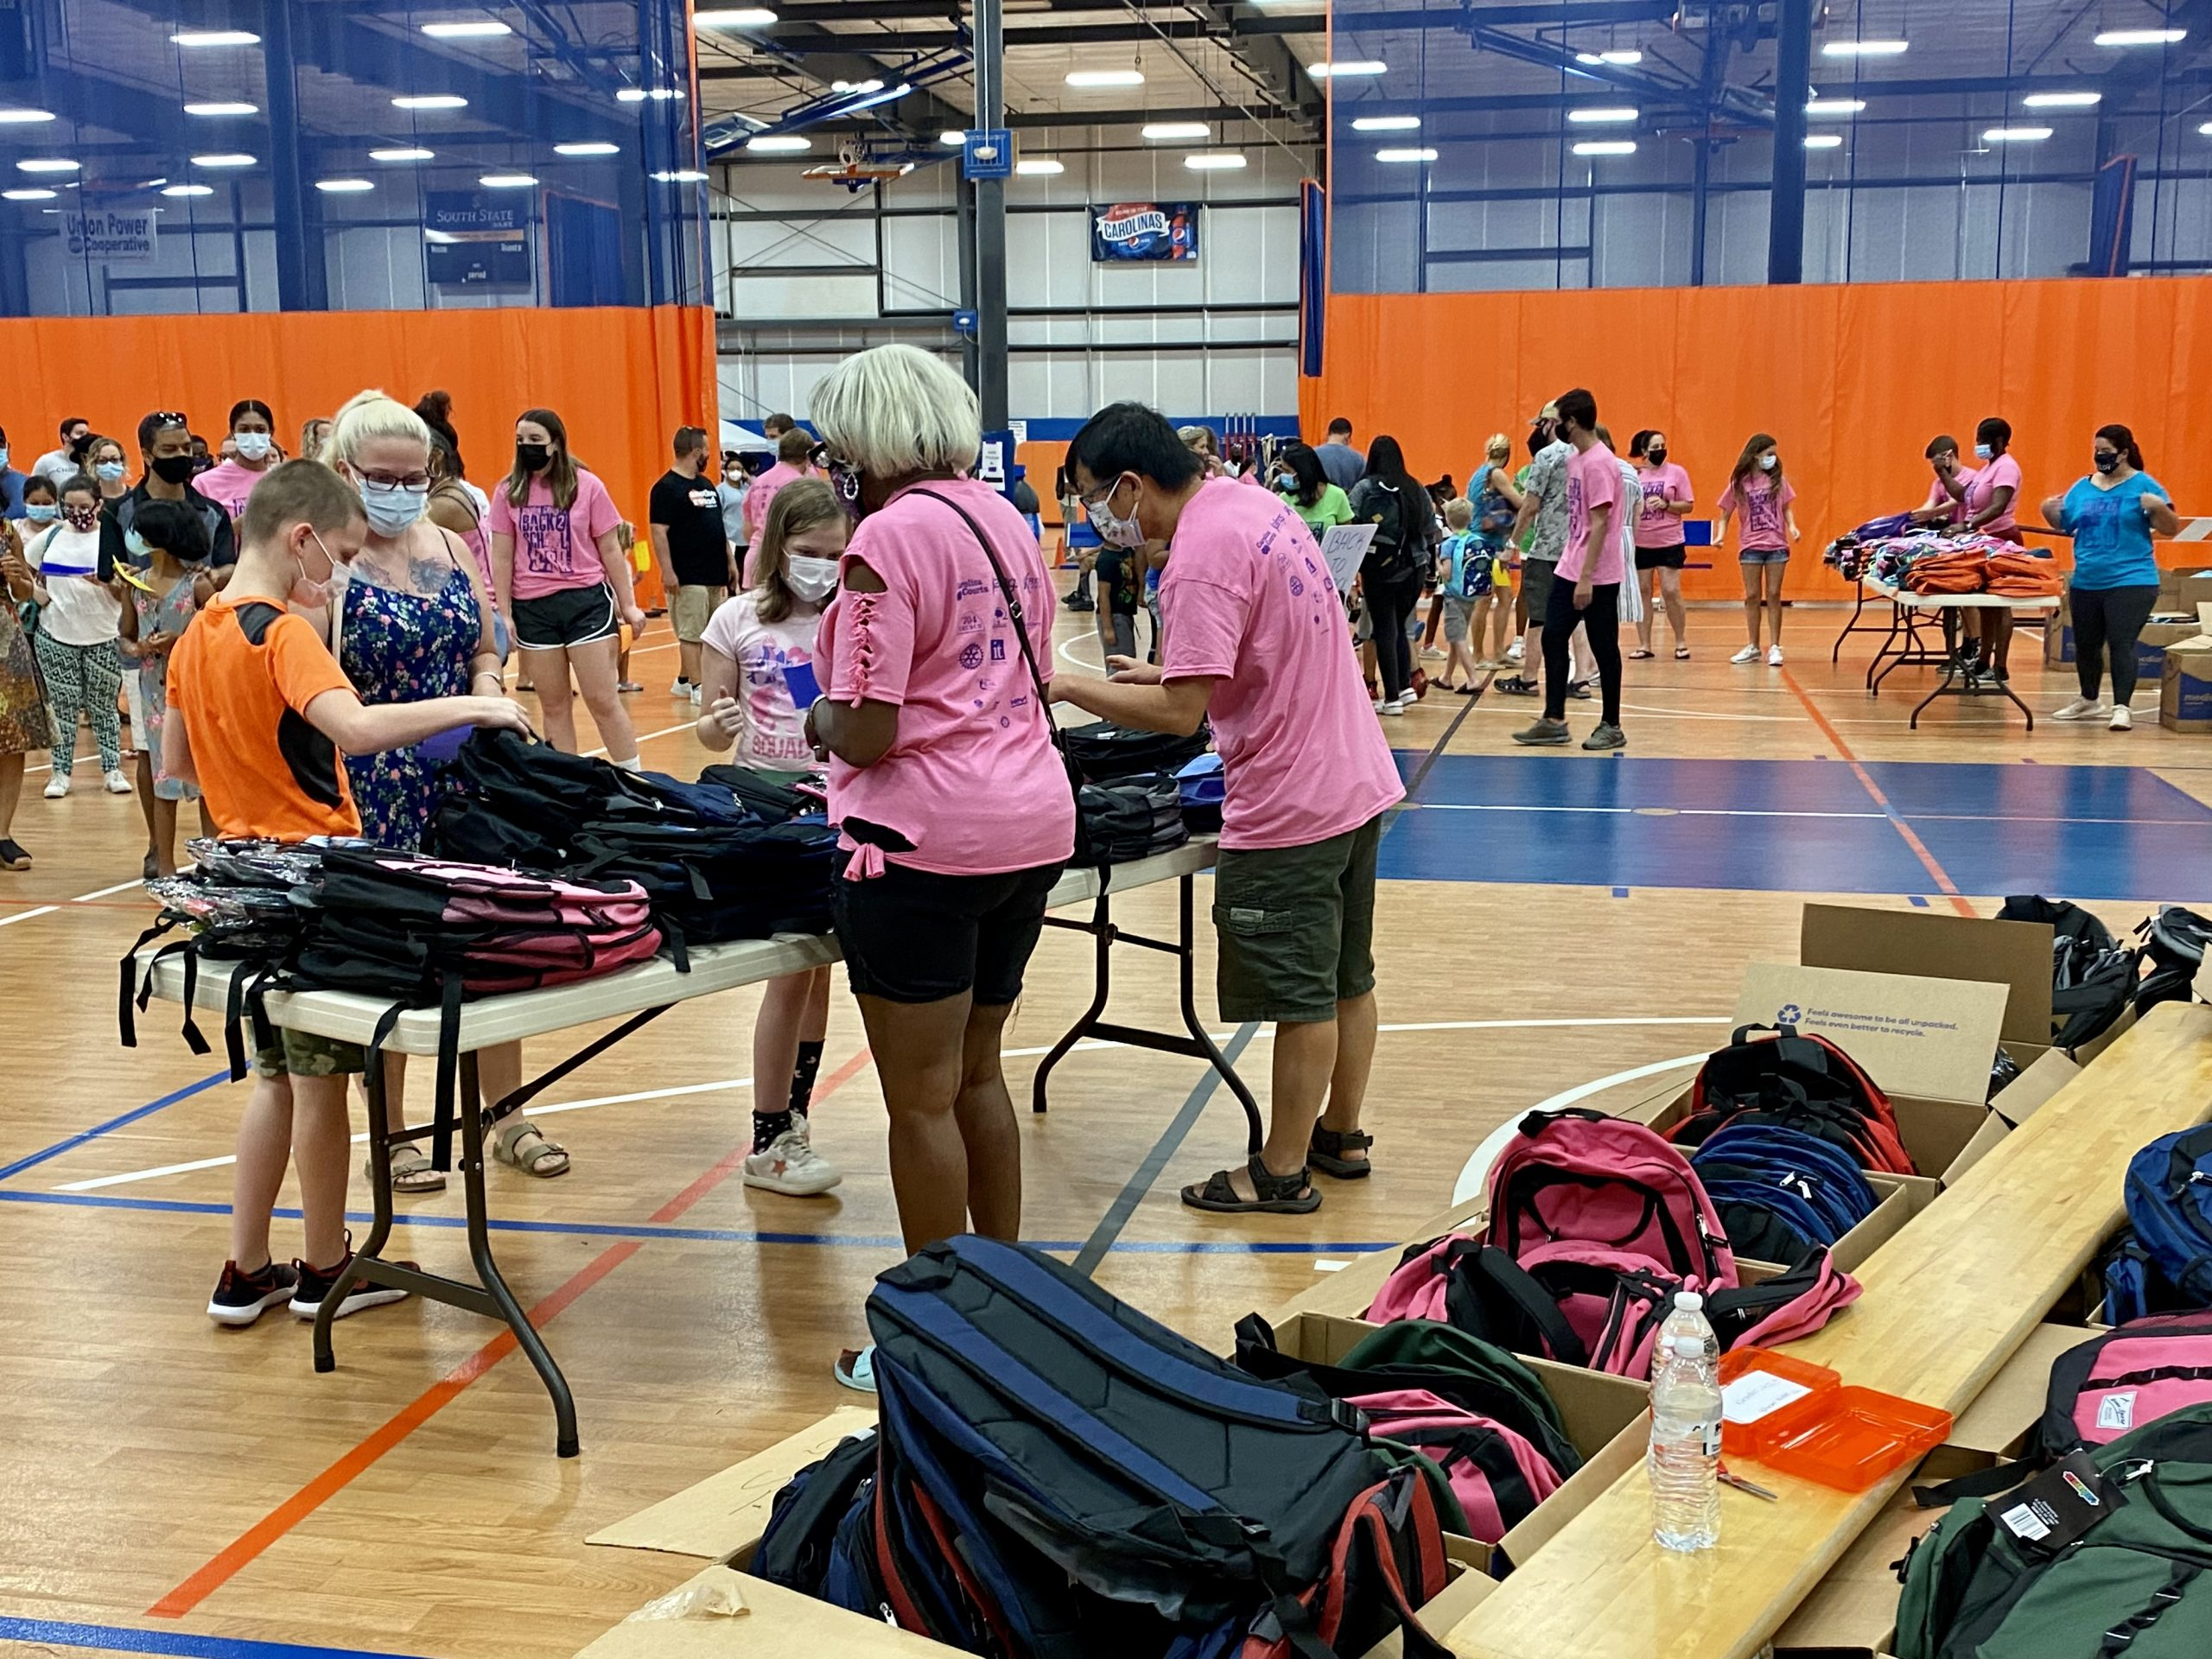 Boxes of backpacks wait to be distributed at the Union County B2SB held in Carolina Courts in Indian Trail.